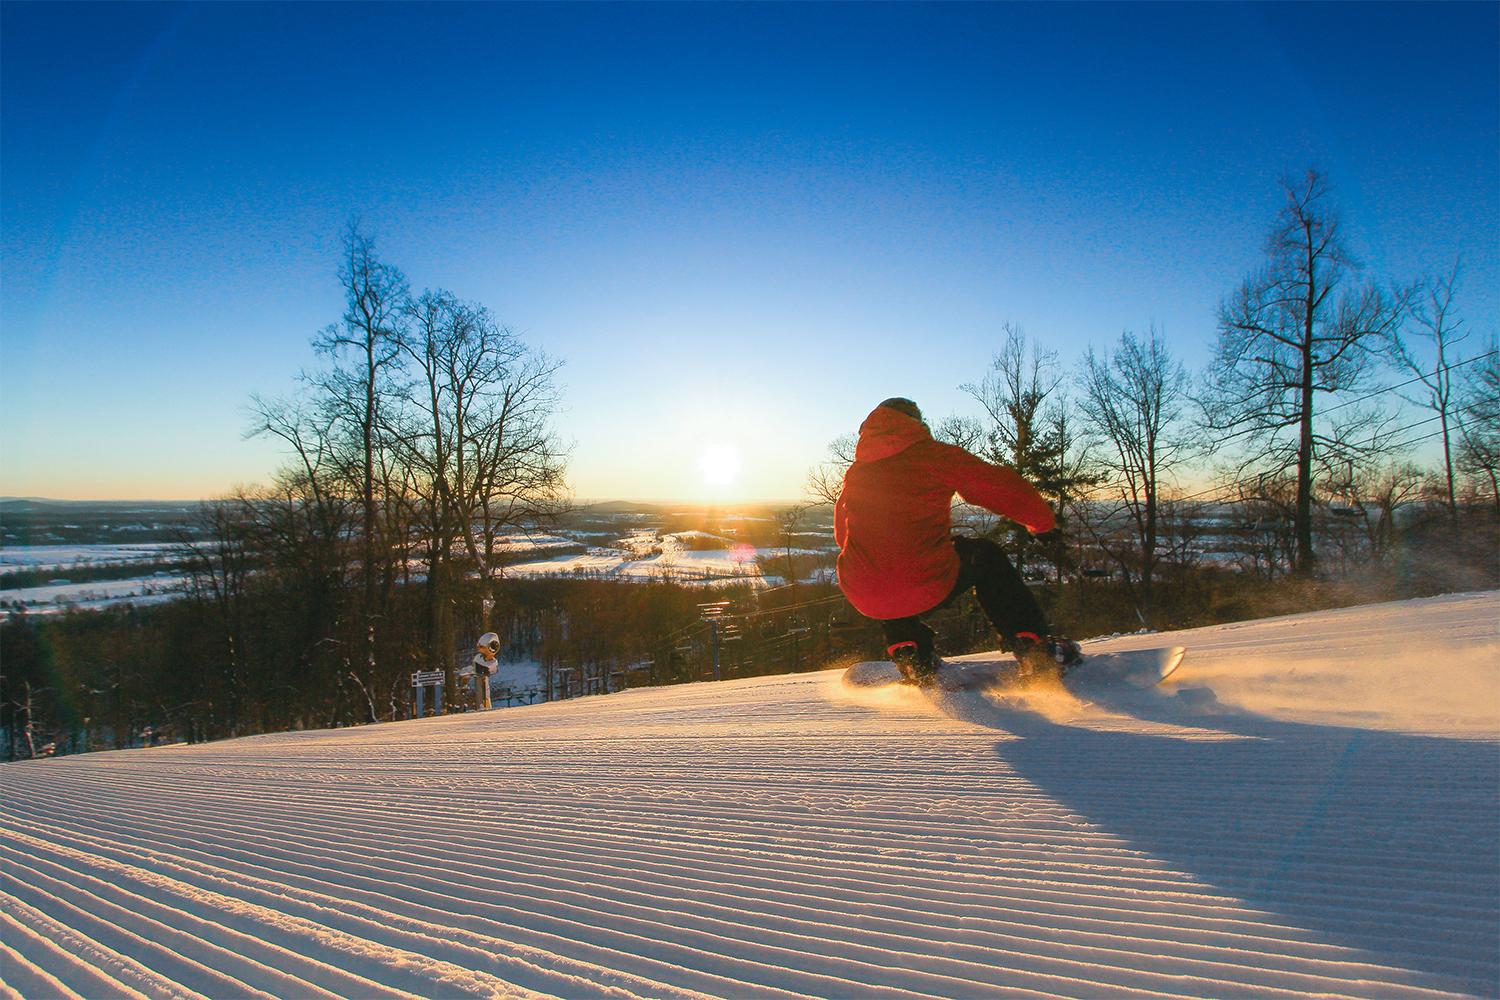 Snowboarder at sunset.{&amp;nbsp;}<p></p>